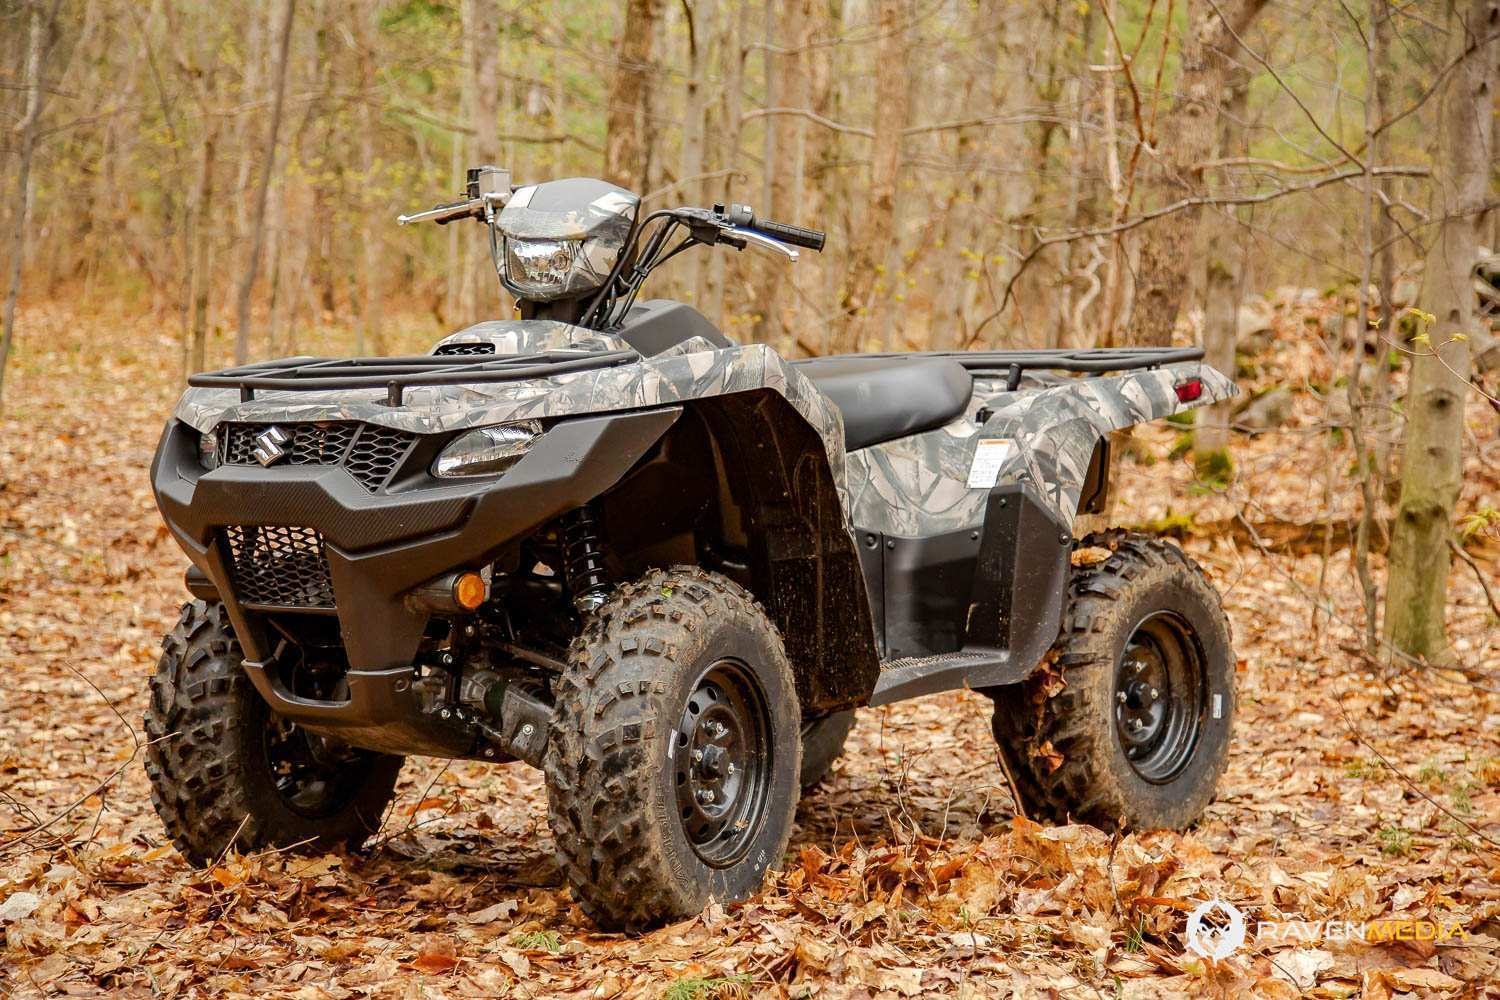 64 Concept of 2019 Suzuki King Quad Price and Review with 2019 Suzuki King Quad